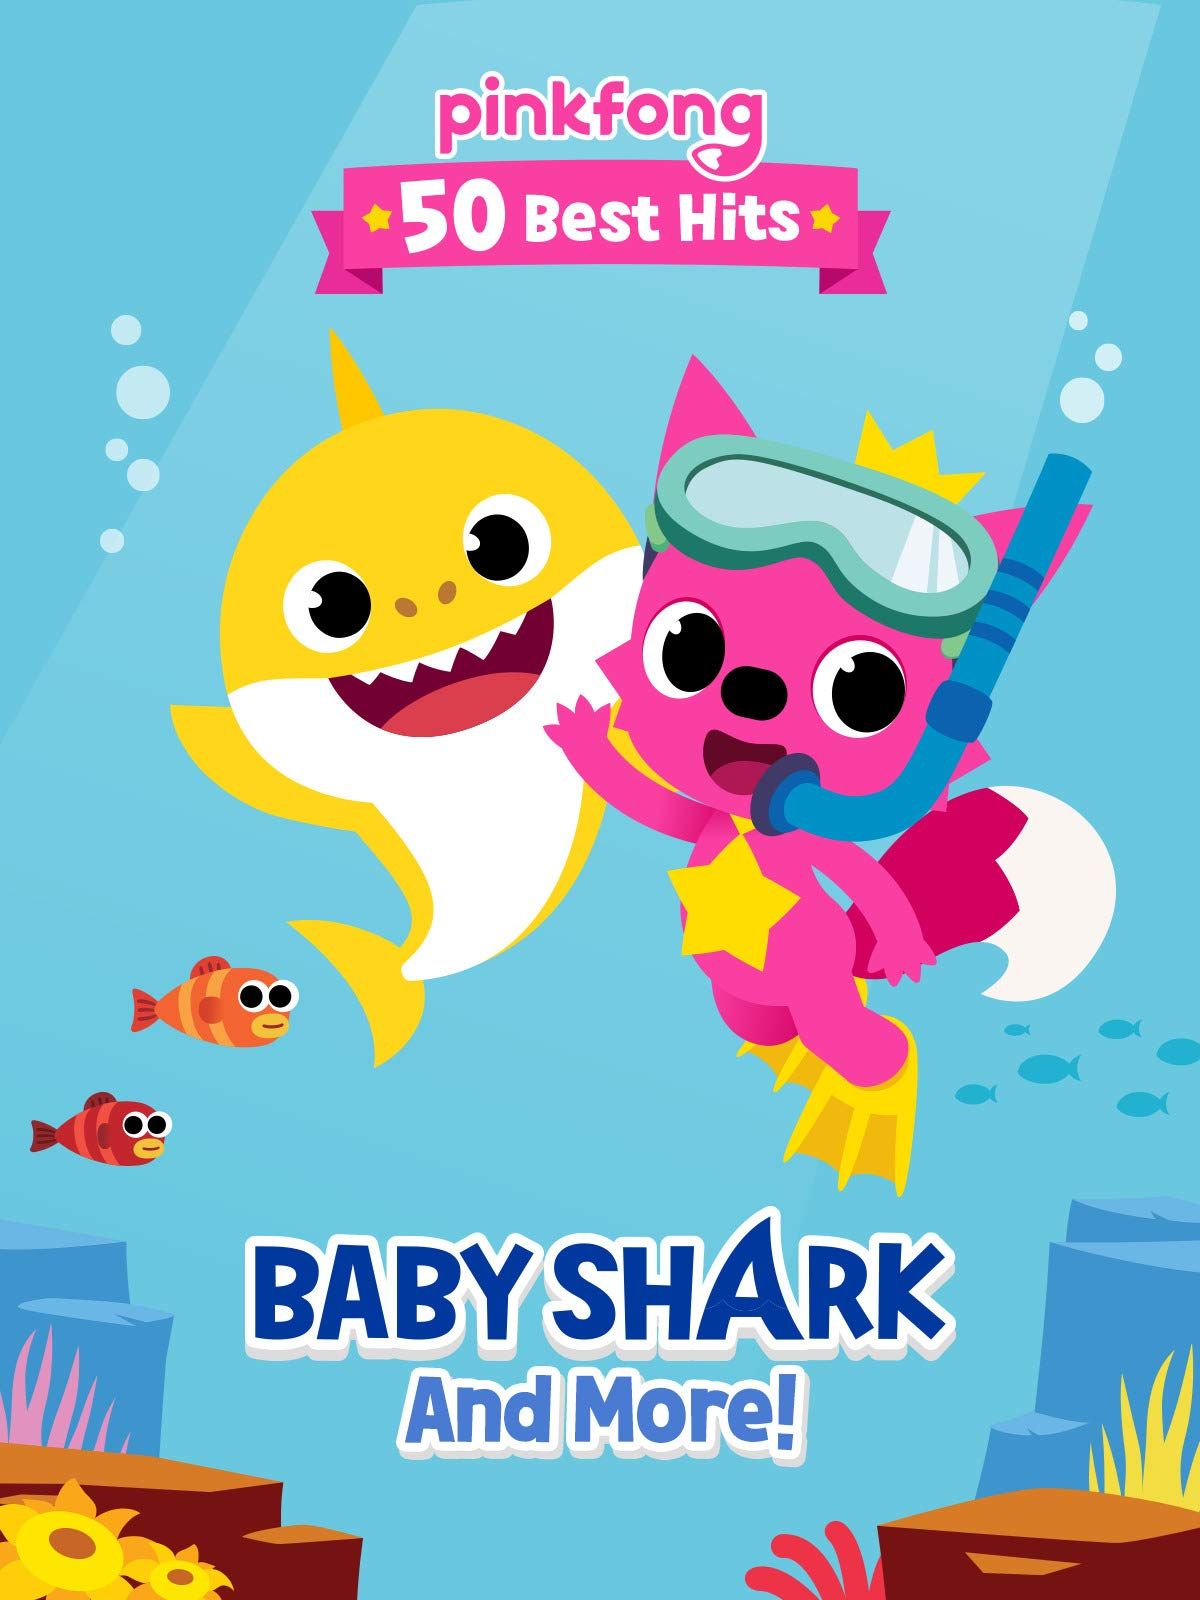 Amazon.com: Pinkfong 50 Best Hits: Baby Shark and More: Pinkfong ...